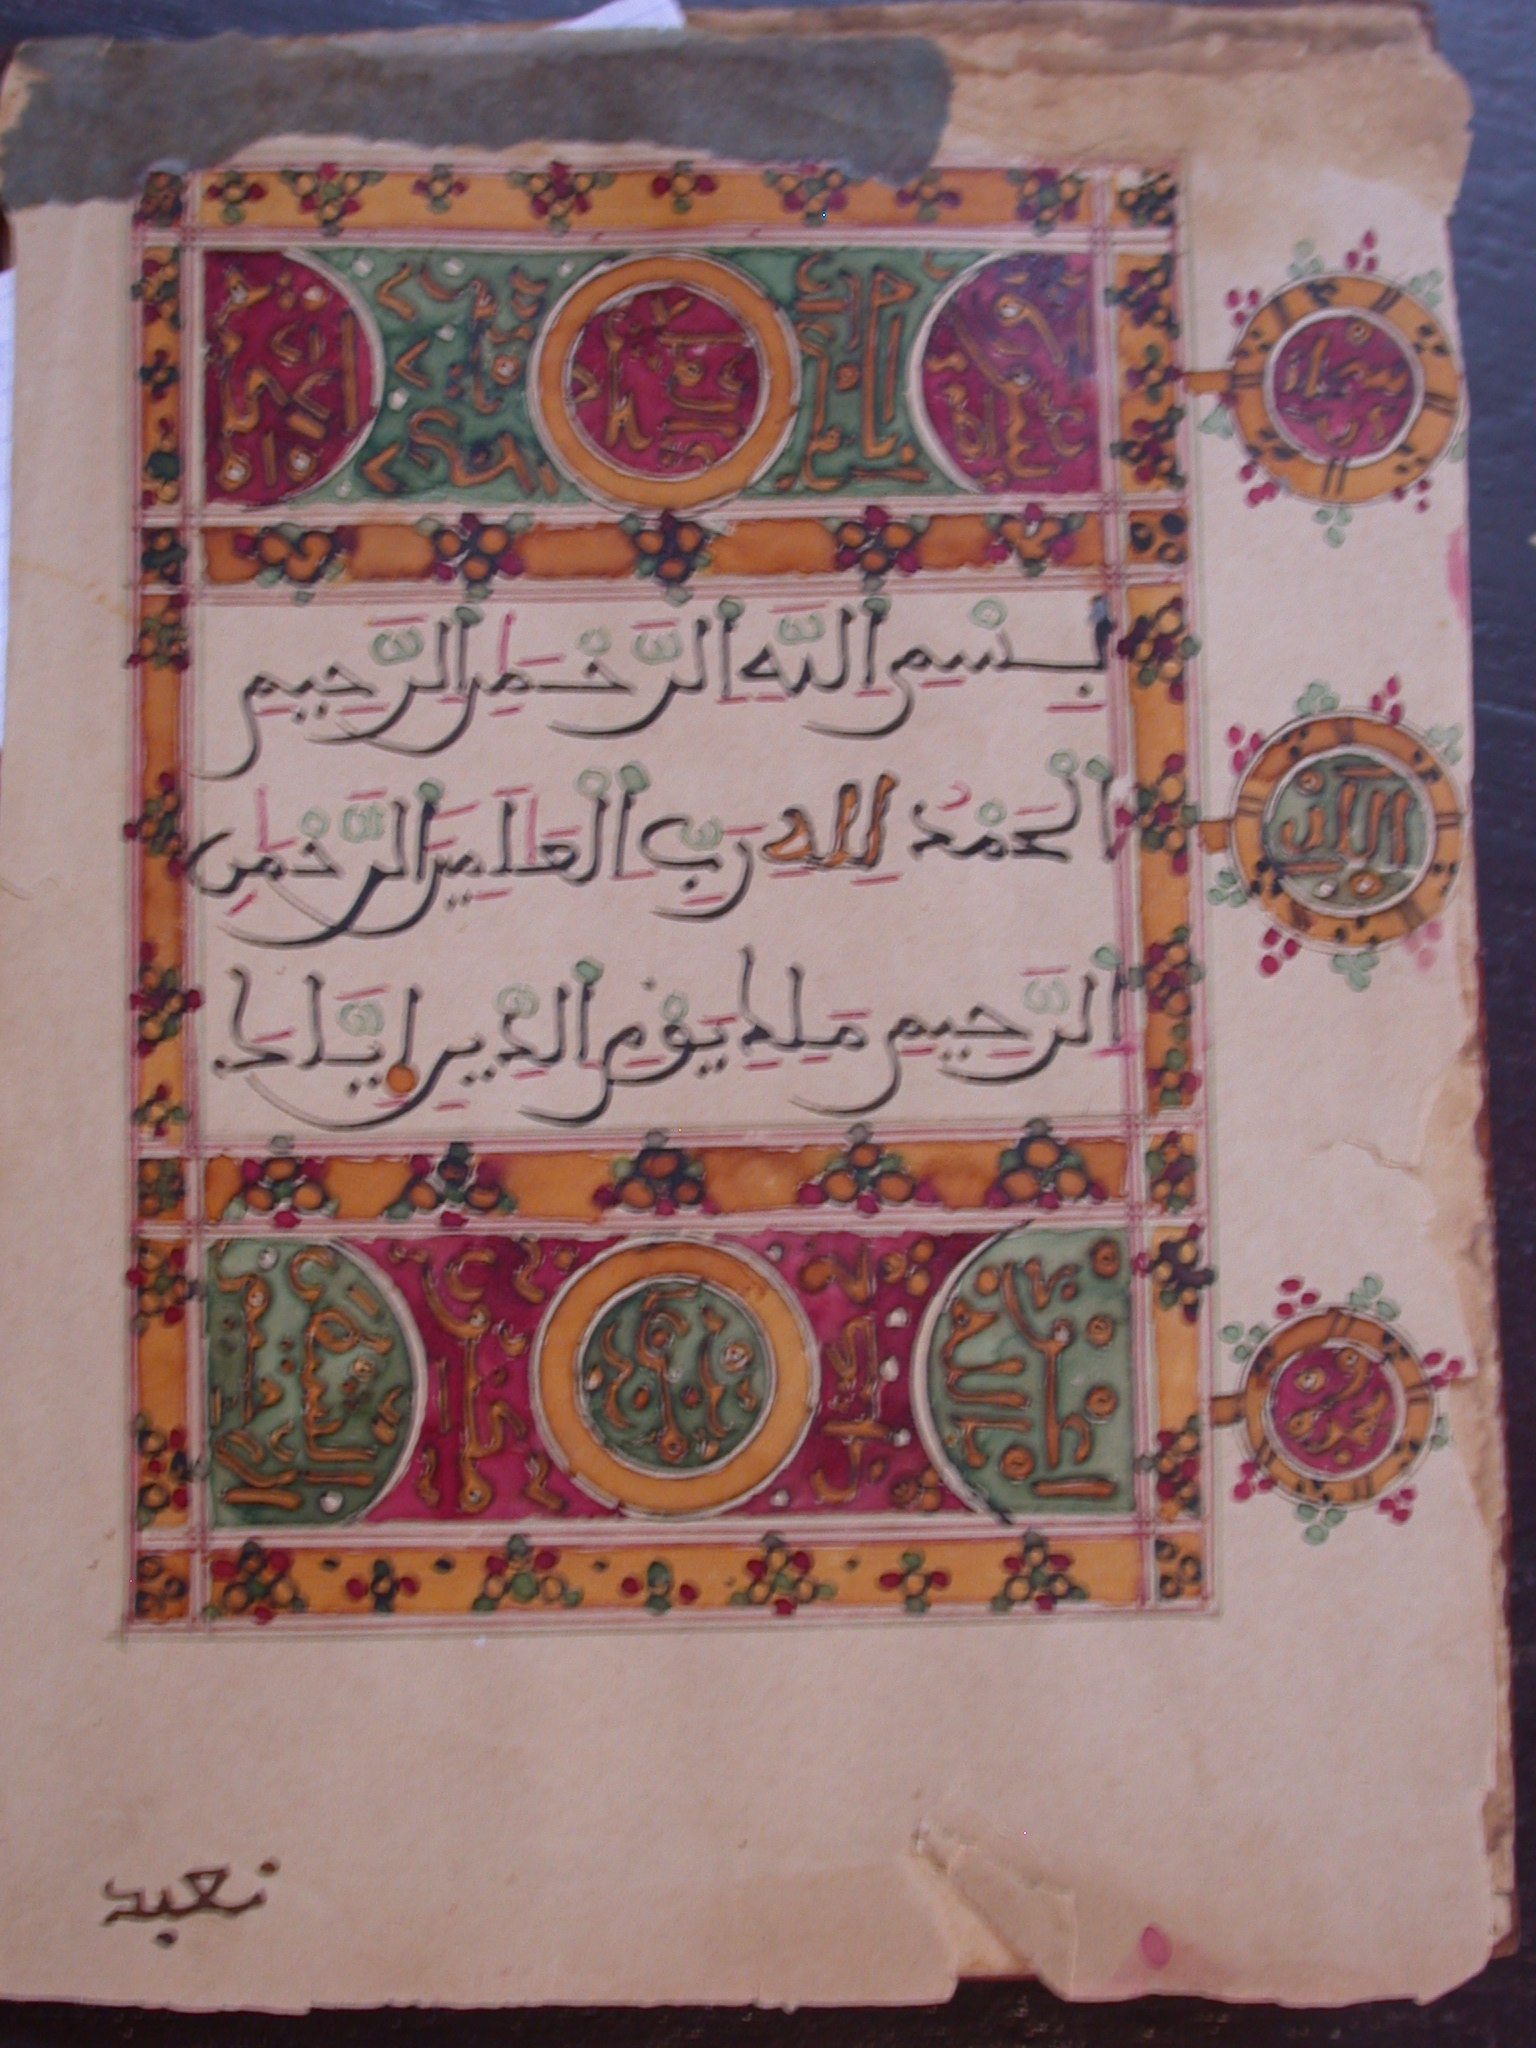 Need Transcription and Translation of Title, Illuminated Manuscript, Manuscript Library, Timbuktu, Mali